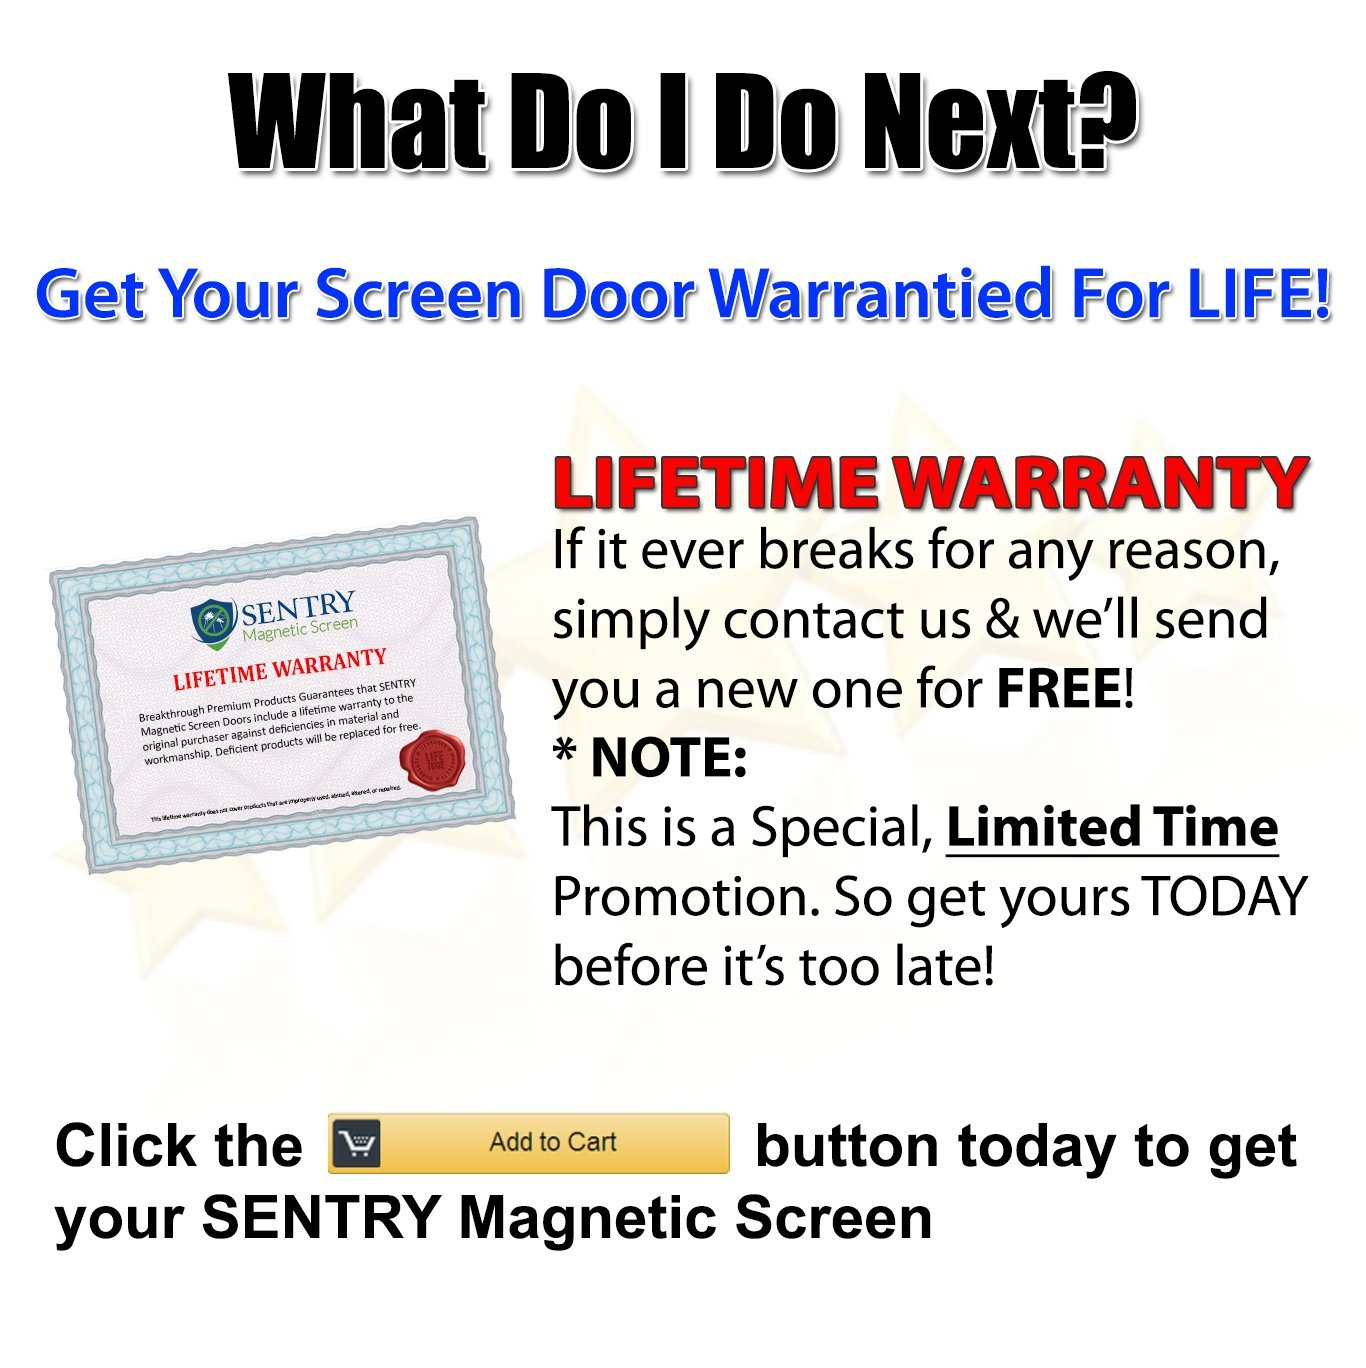 Tough and Durable Breakthrough Premium Products IHLSMS3683GR US Military Approved MAGNETIC SCREEN DOOR Reinforced With Full Frame Hook and Loop Fasteners to Ensure All Bugs Are Kept Out Many Sizes and Colors to Fit Your Door Exactly